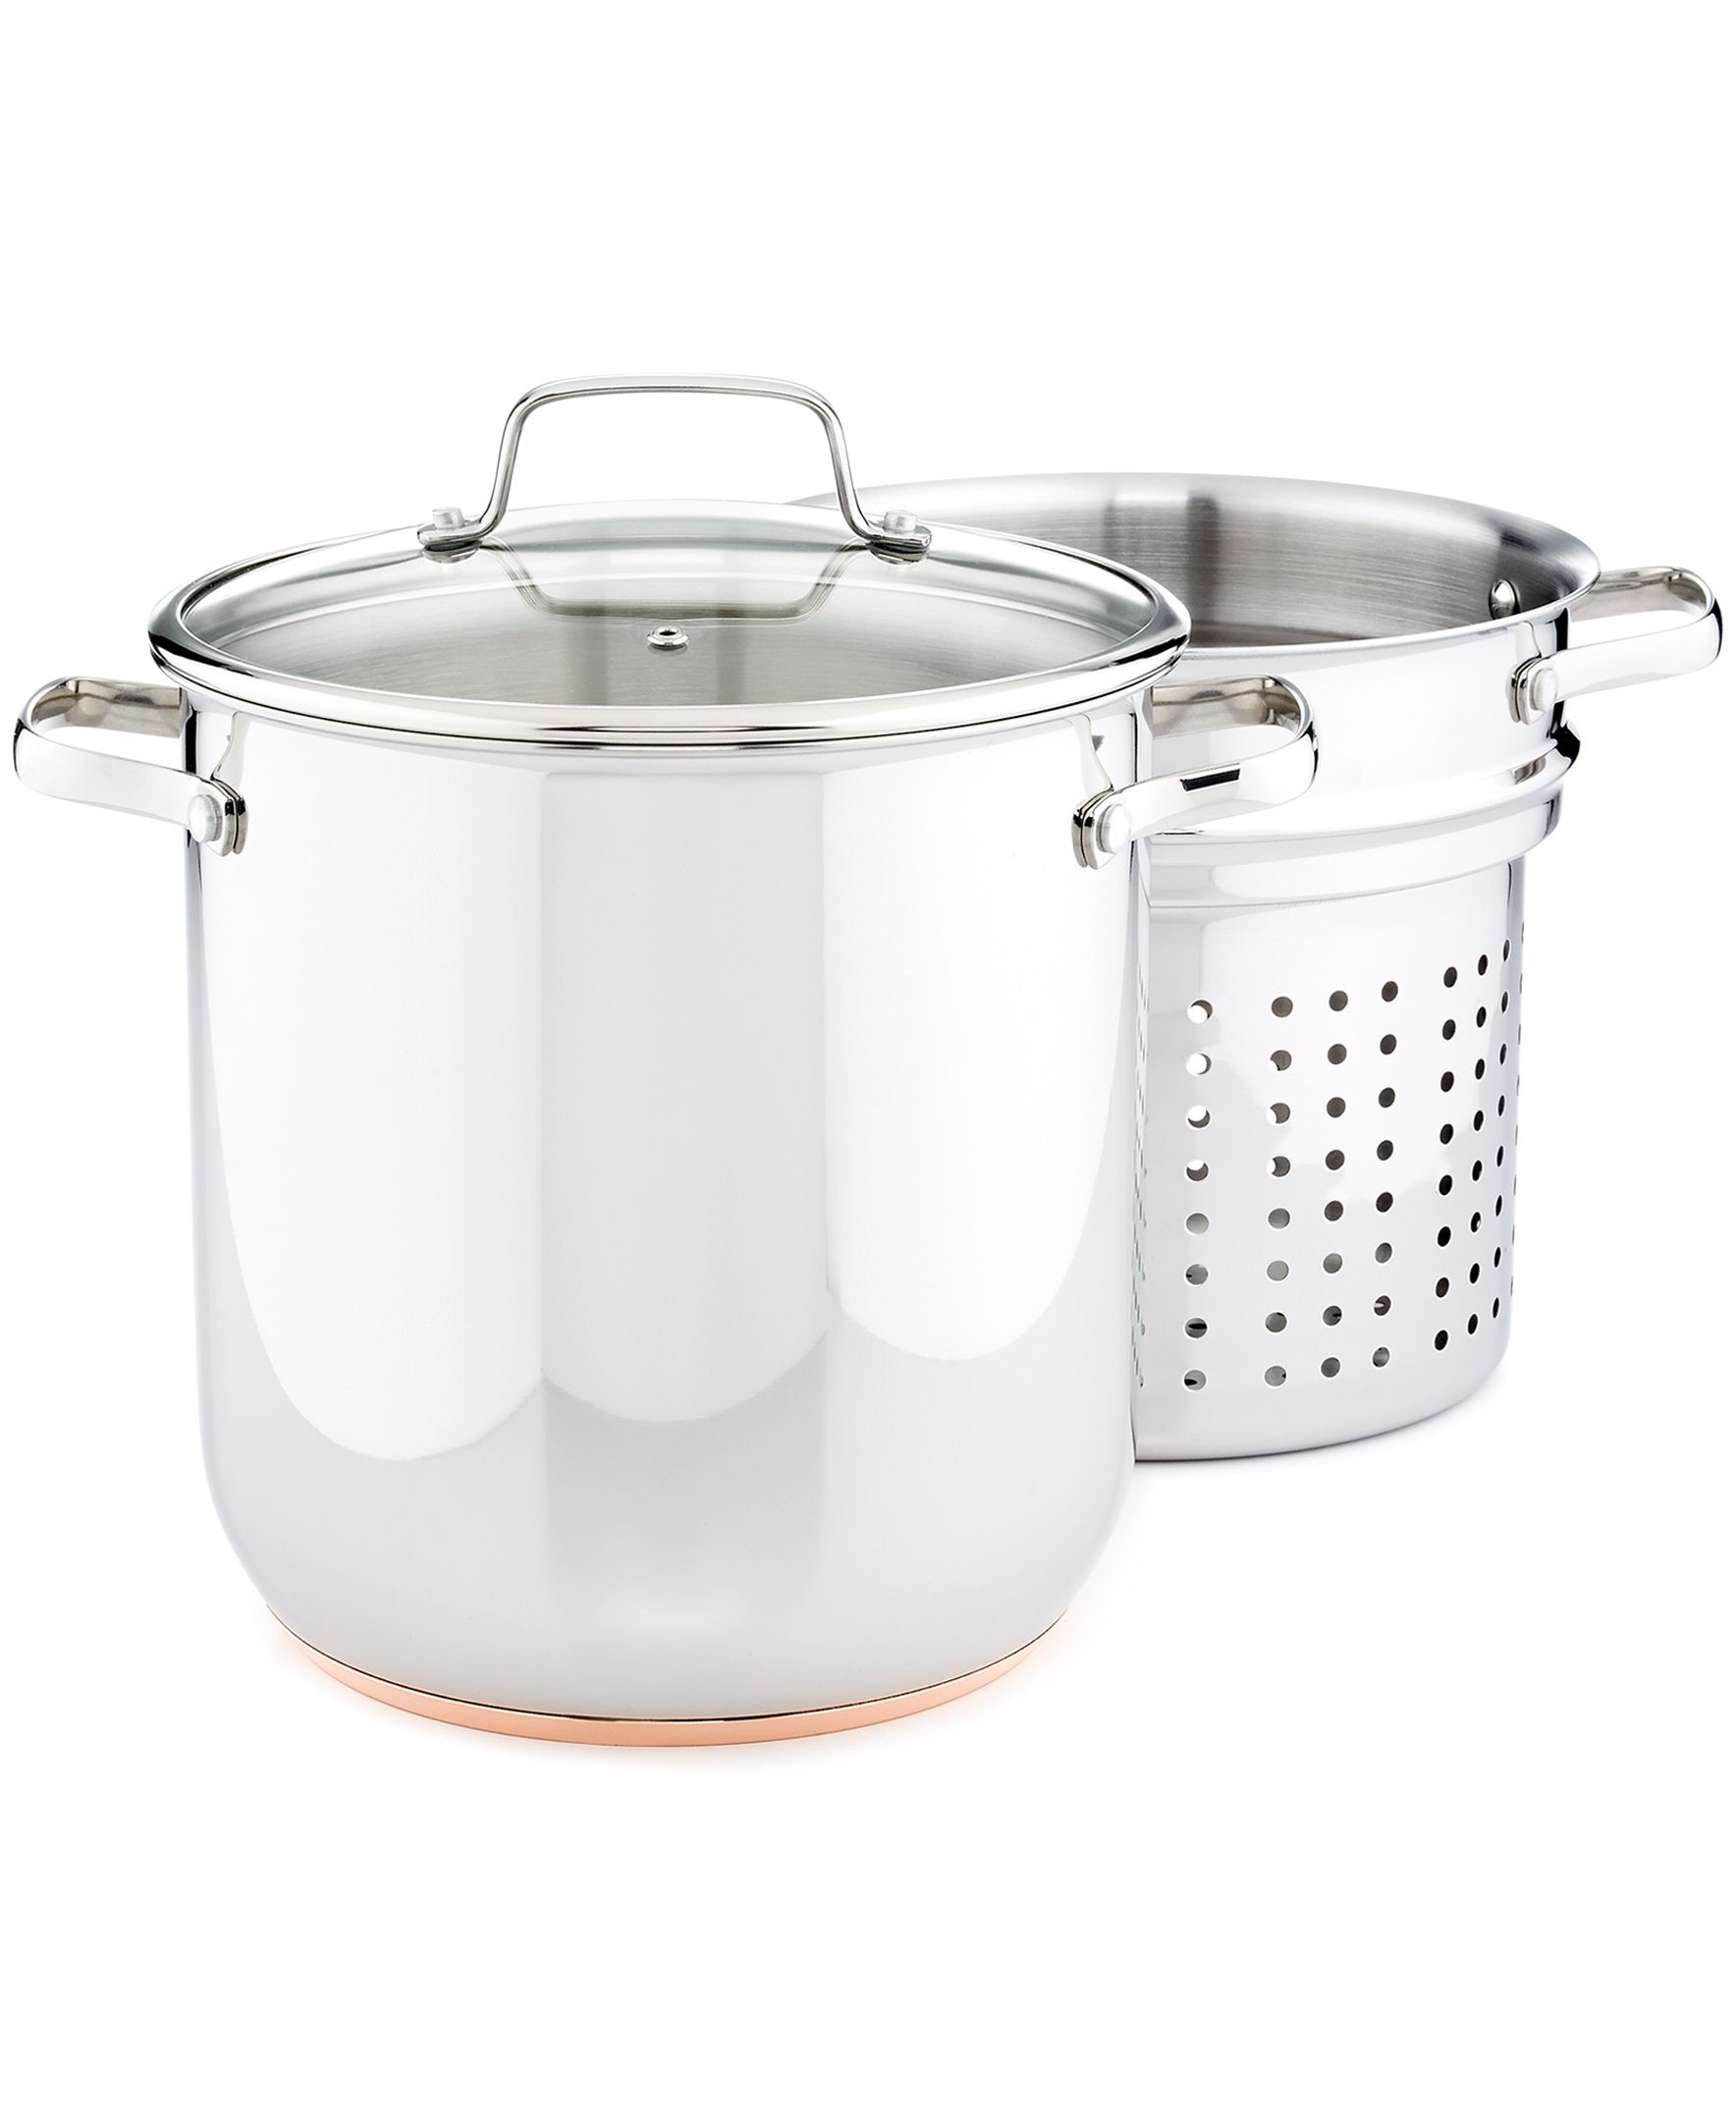 Streamline Your Pasta Night With A Stockpot With Built In